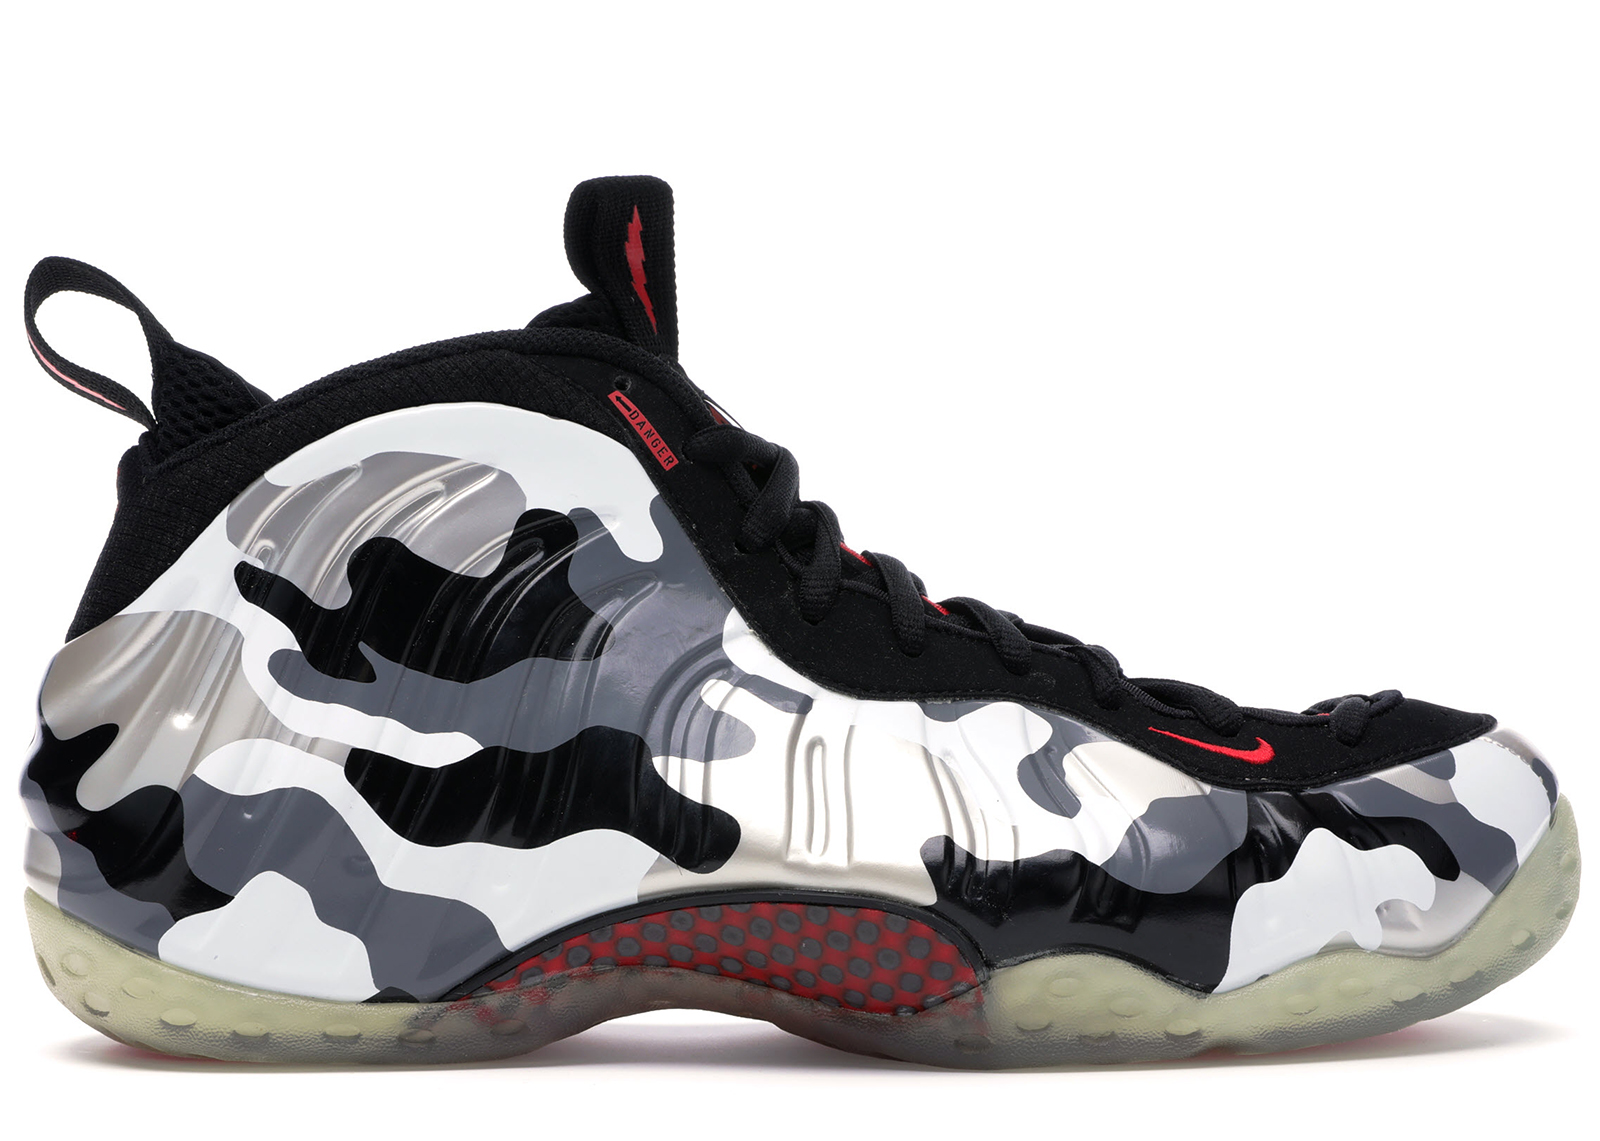 9734c8d517e31 ... coupon code for air foamposite one fighter jet 575420 001 6092d 40e6b